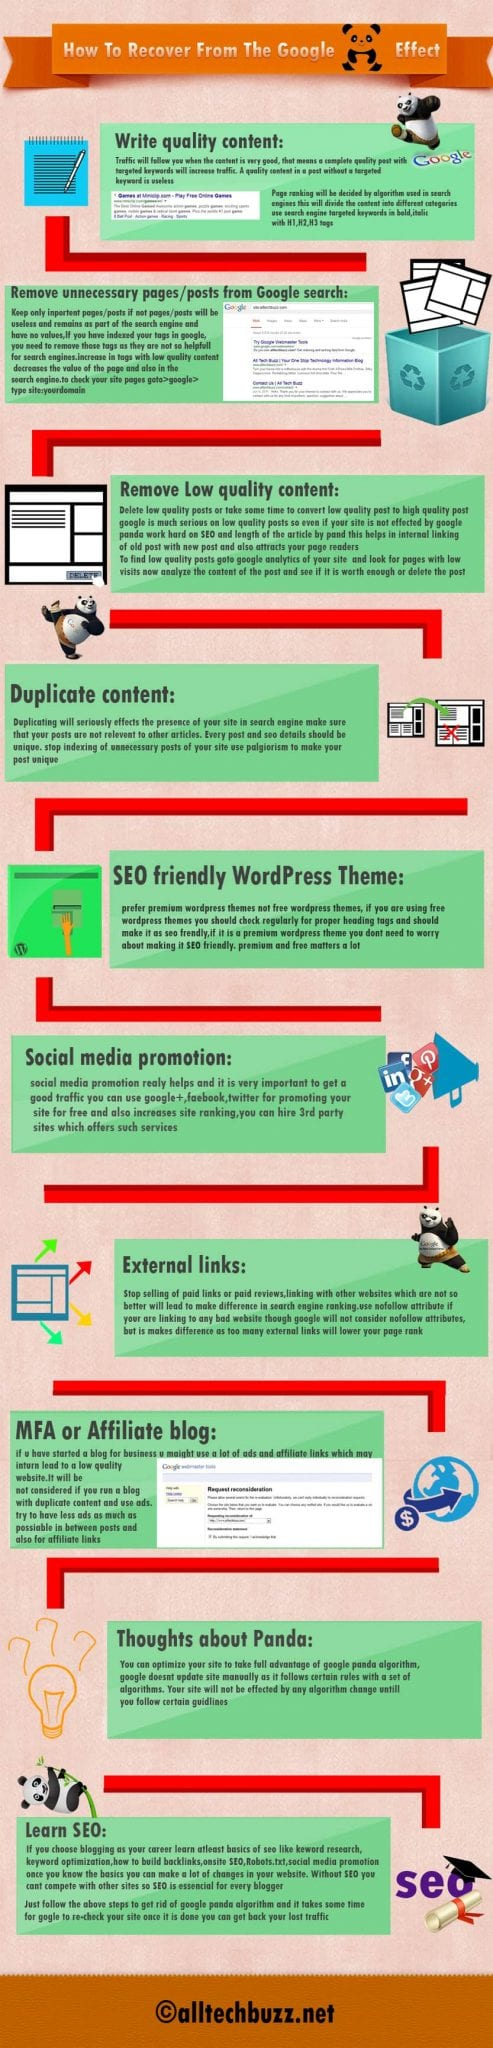 Google themes panda - Below Is An Infographic On How To Recover From Google Panda Effect